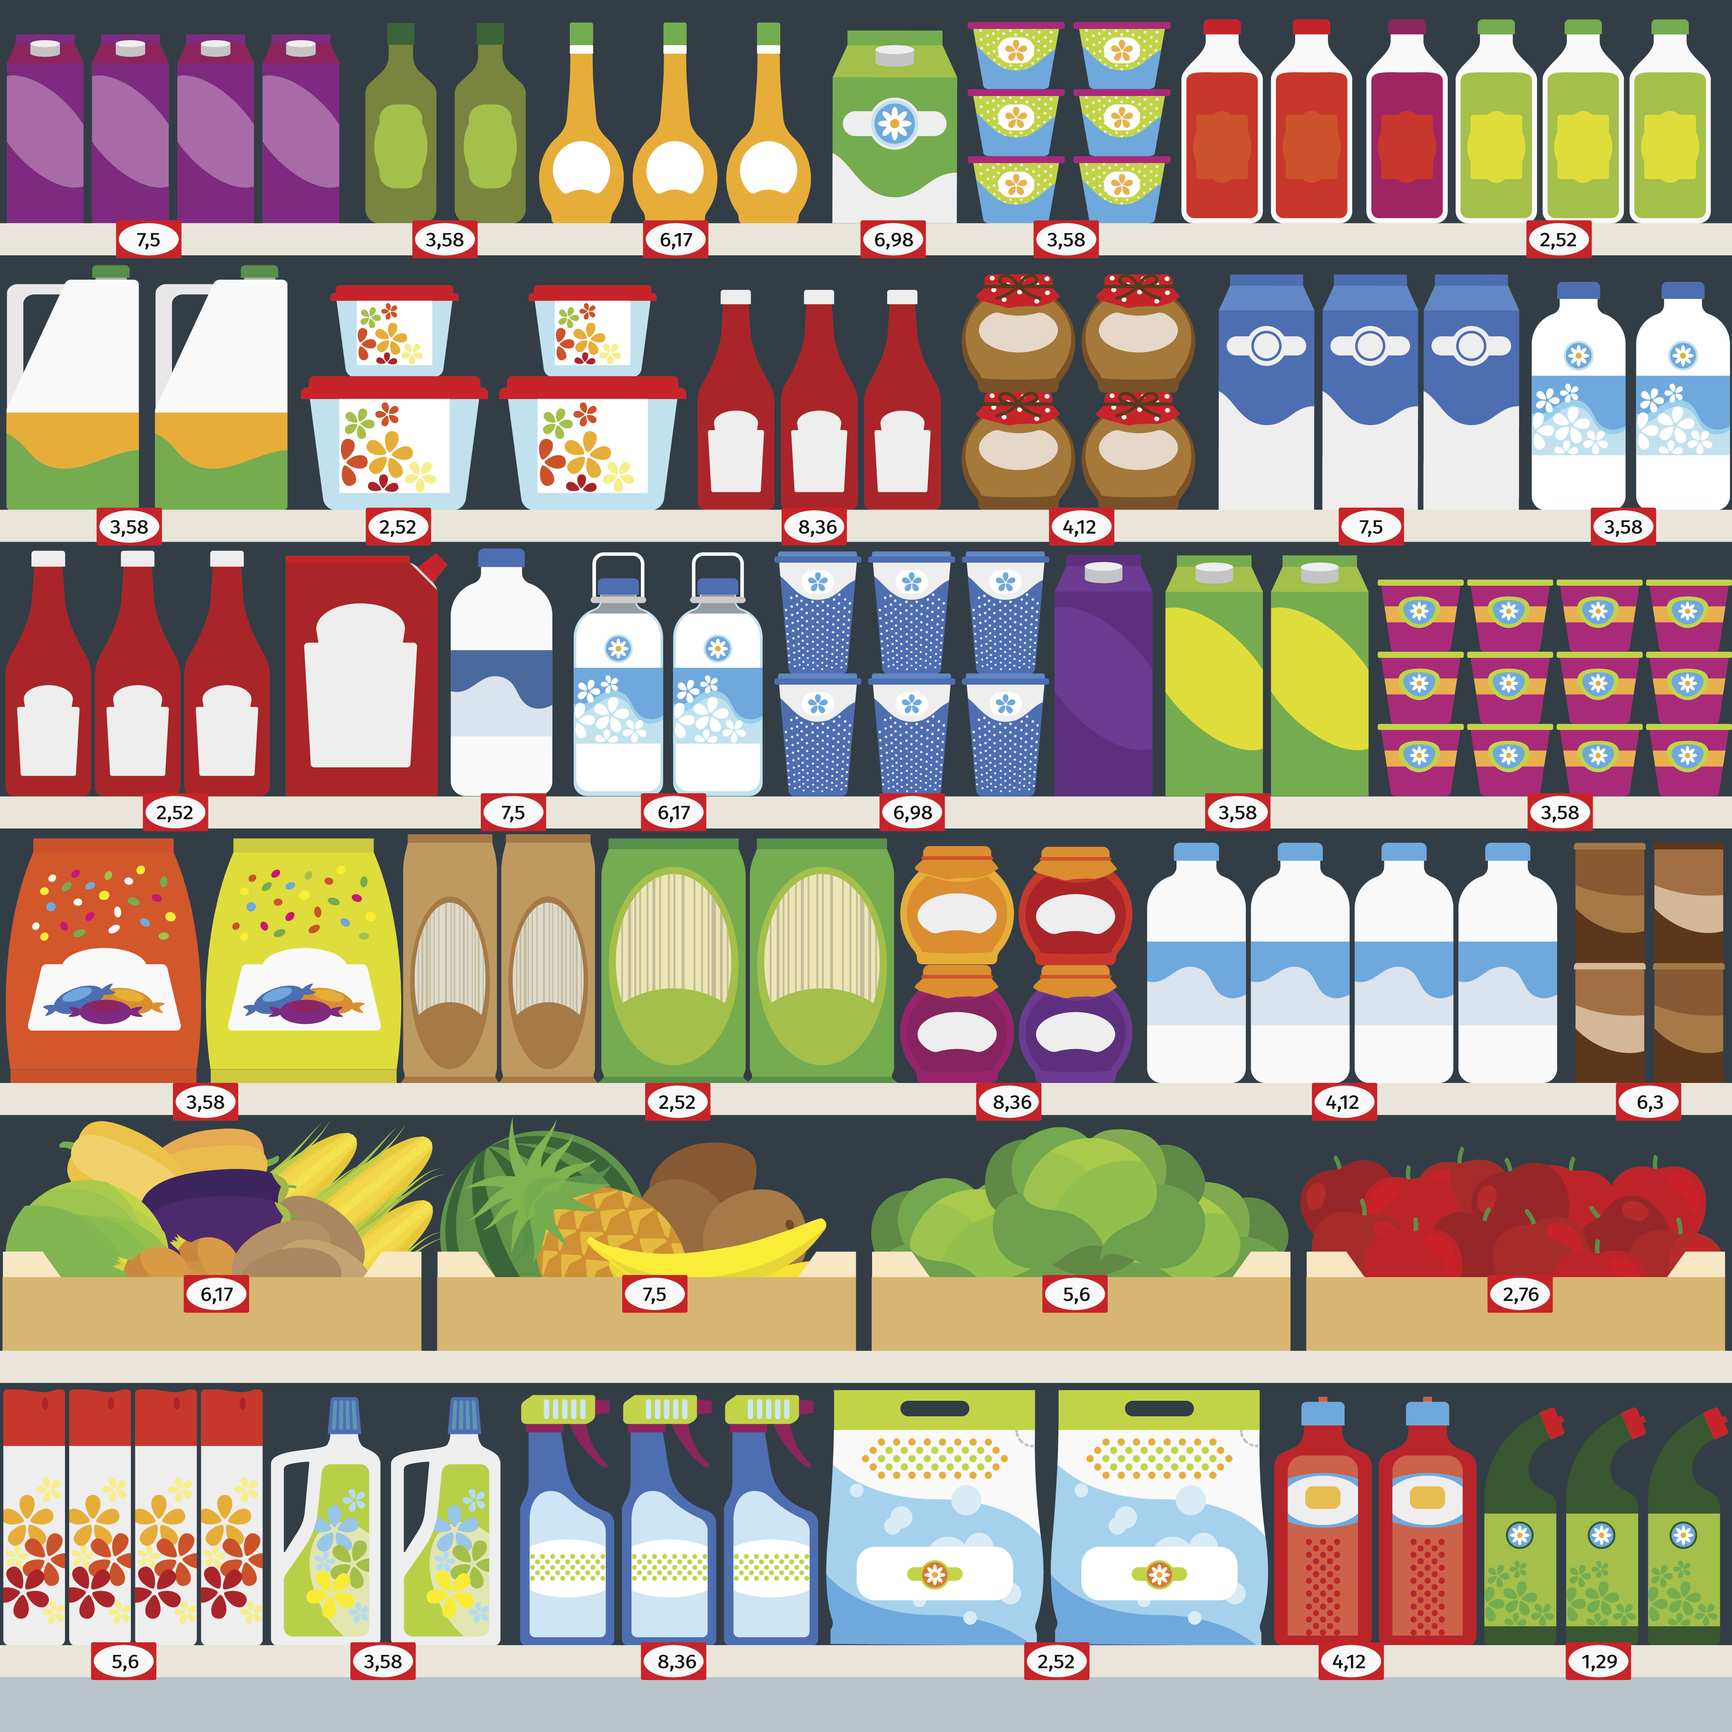 Store shelves with groceries background - ClickZ